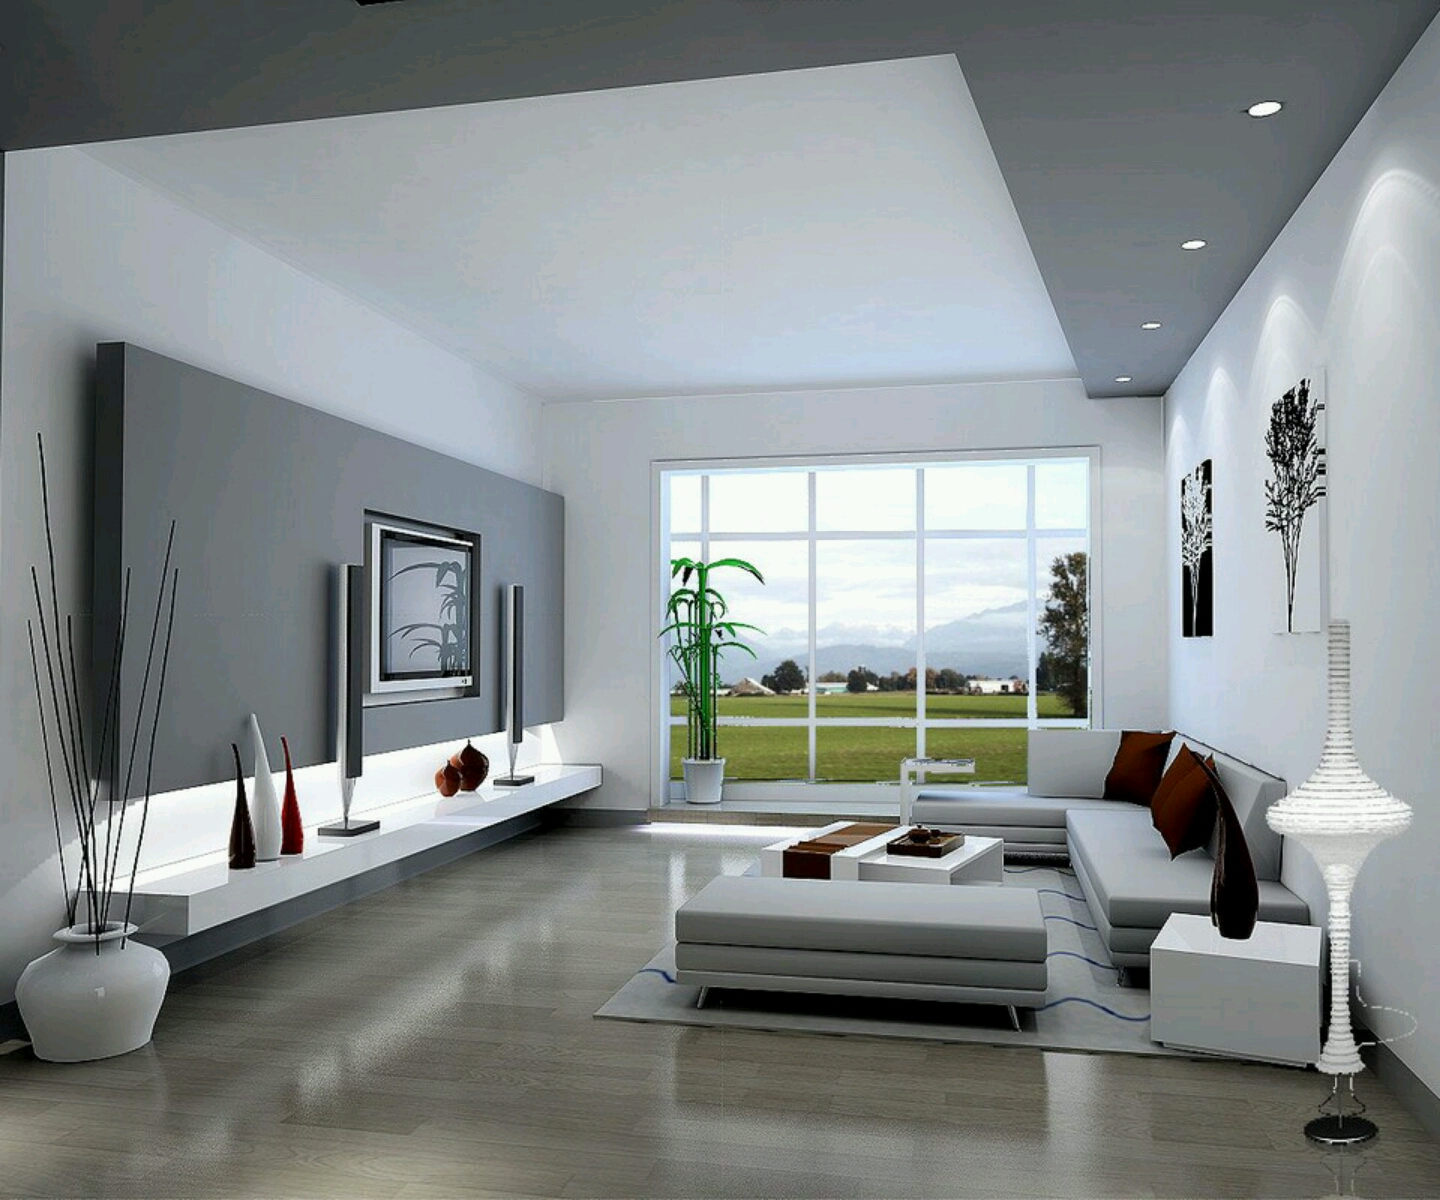 New home designs latest modern living rooms interior for Modern interior design